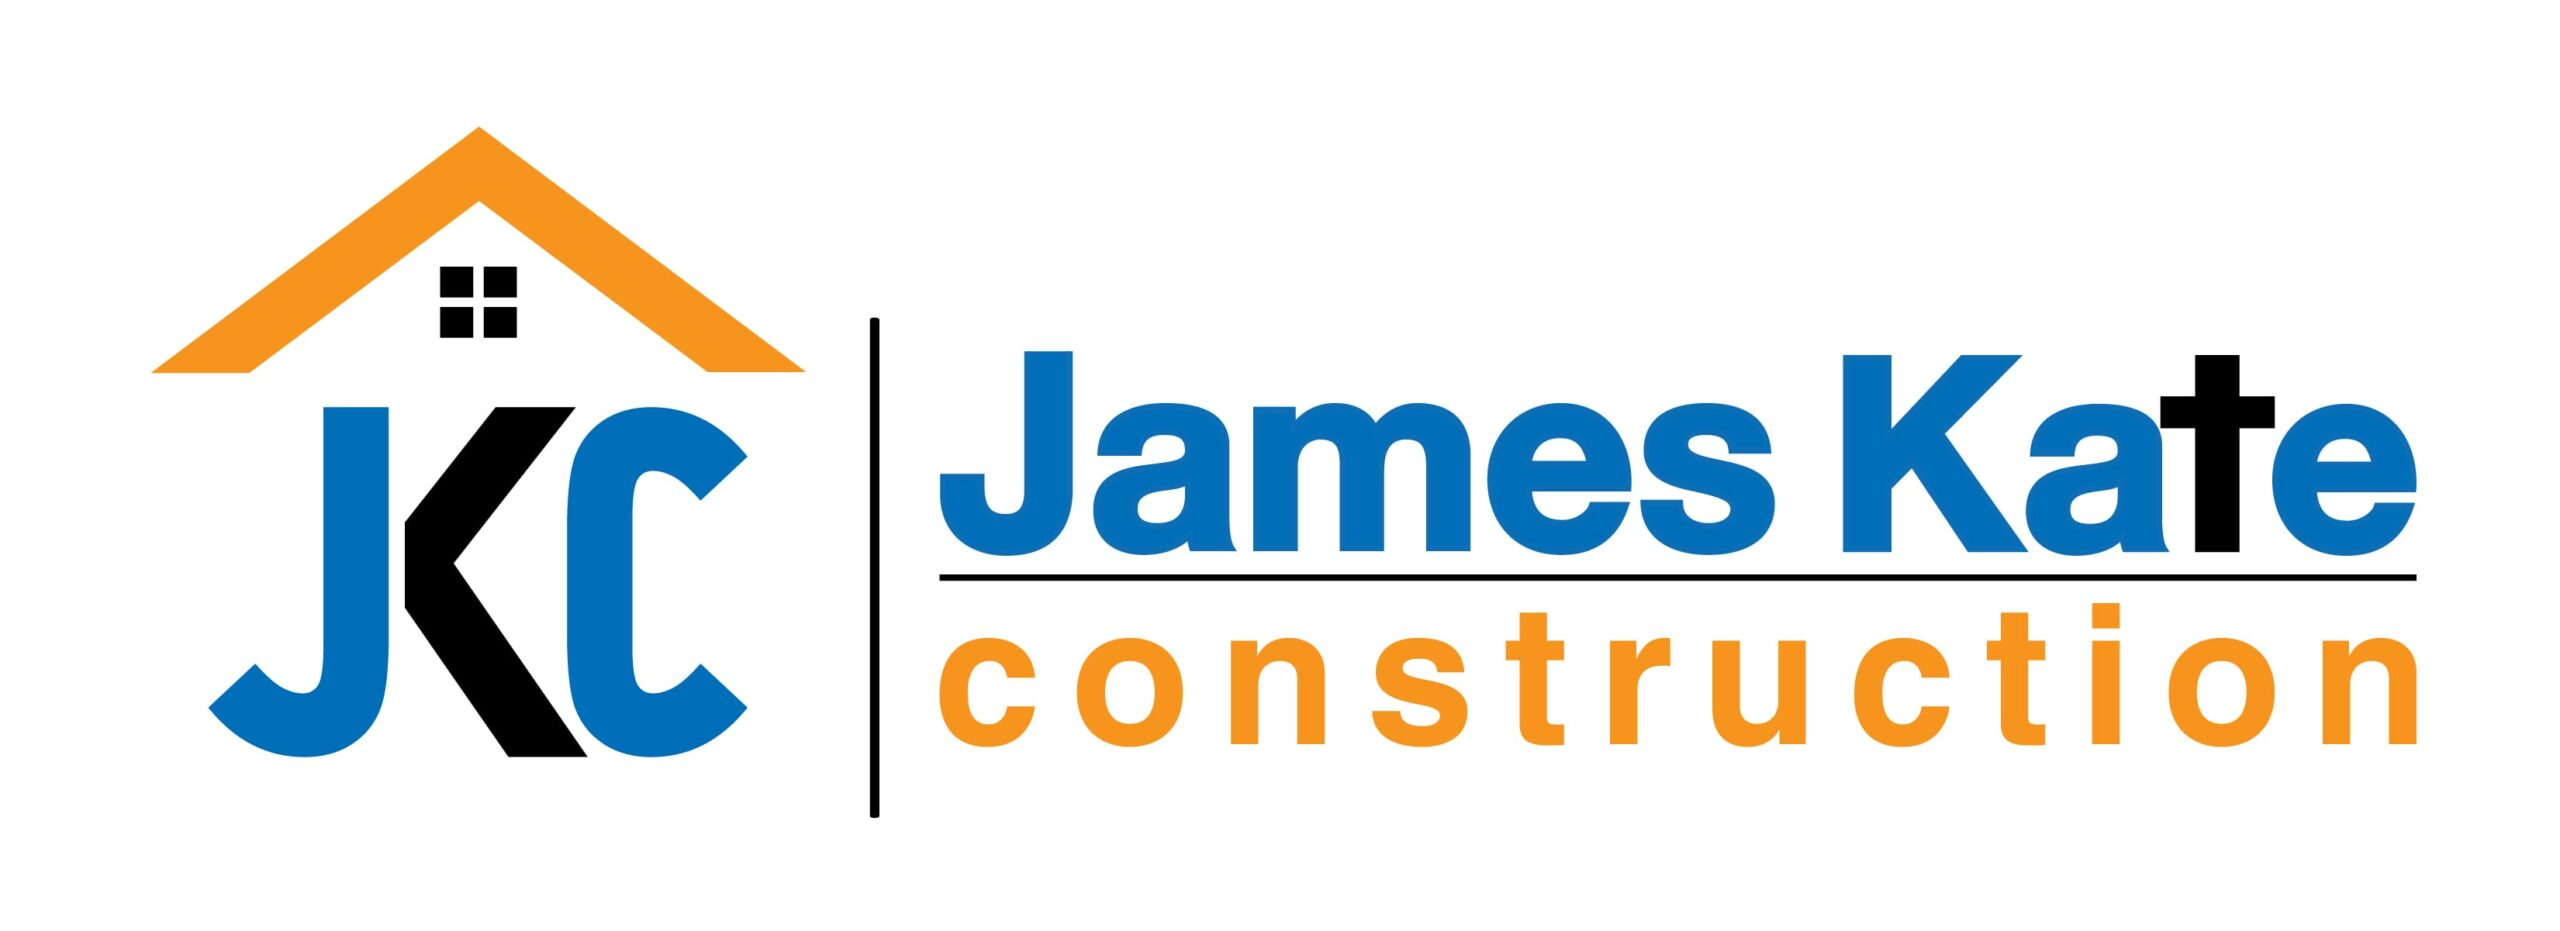 James Kate Construction: Roofing, Painting & Windows, Arlington Roofer, is Offering Excellent Roofing Services in Arlington 6